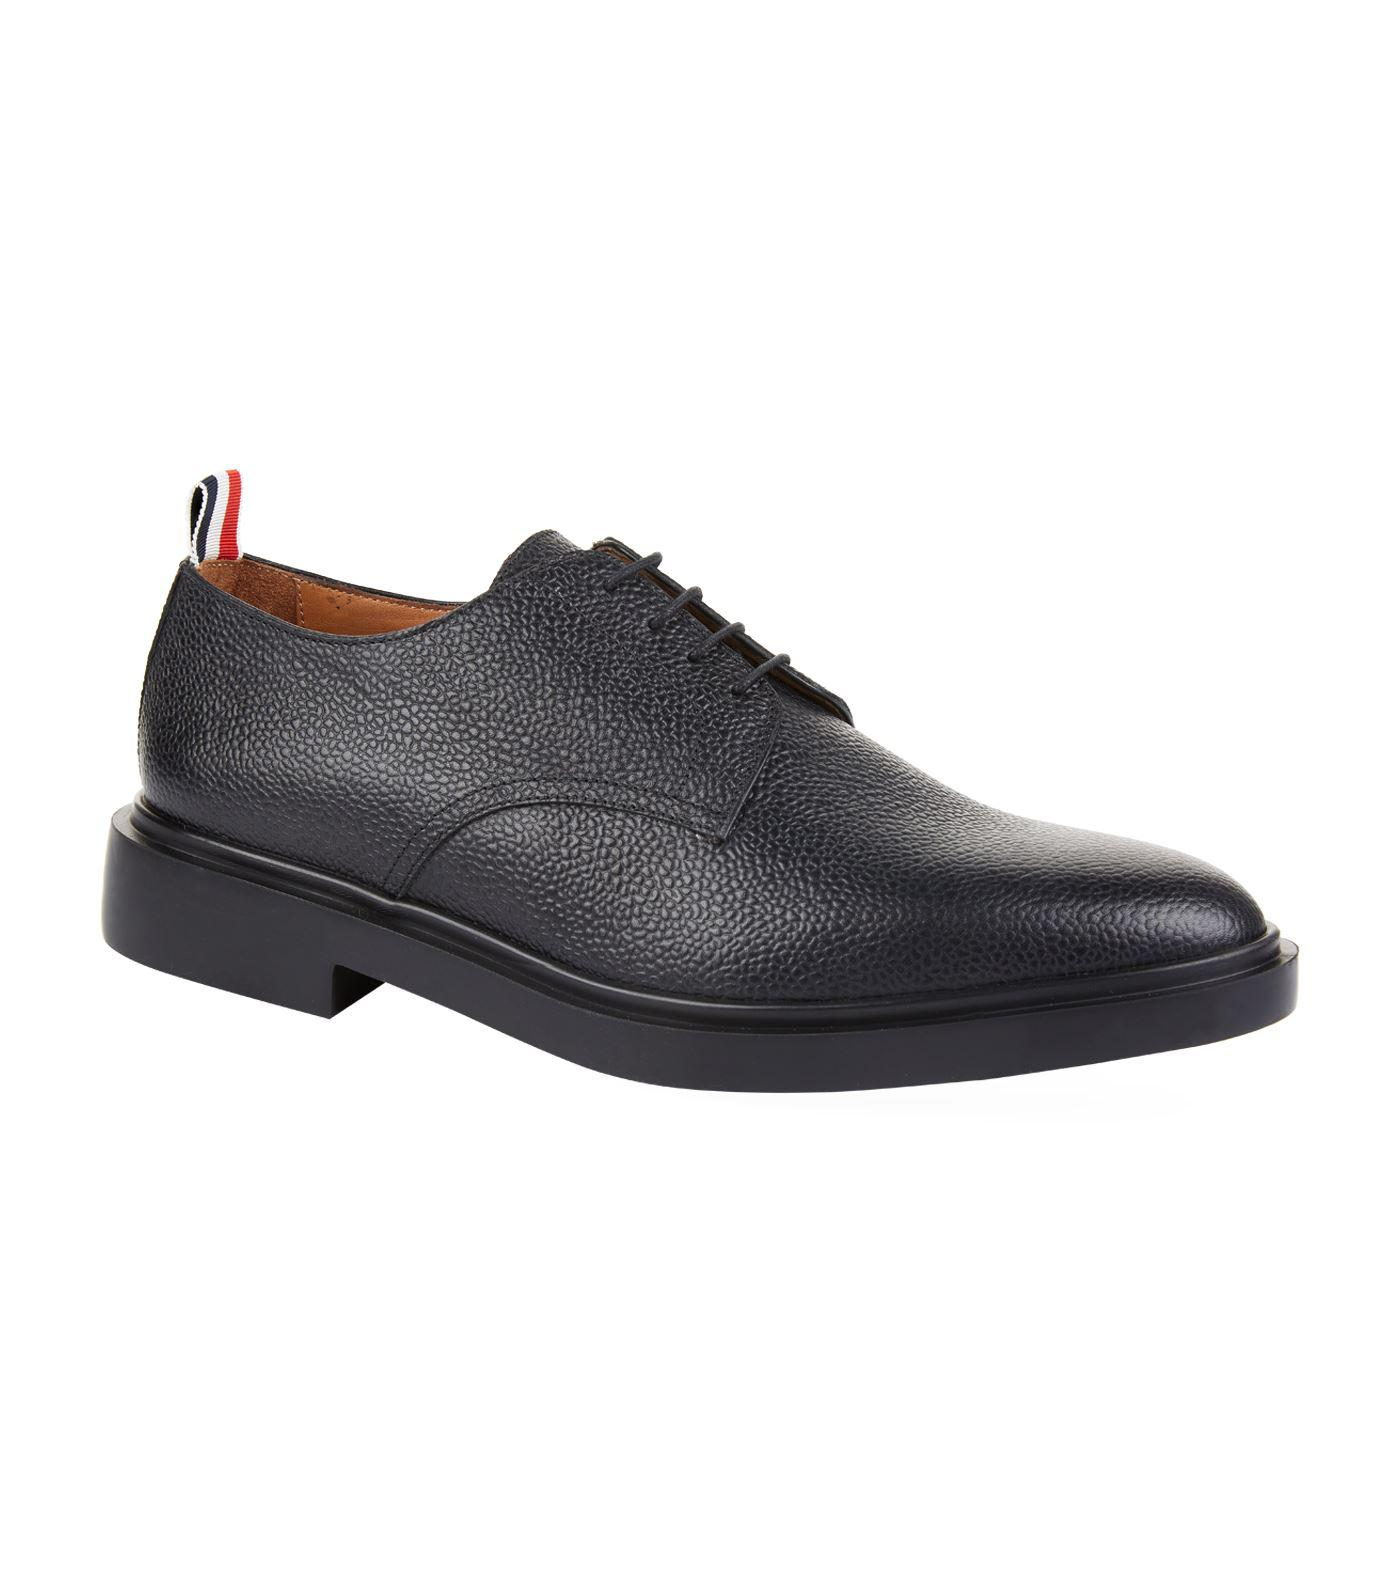 Thom Browne Chaussures Derby Pebbled En Cuir De Grain WQNBNr